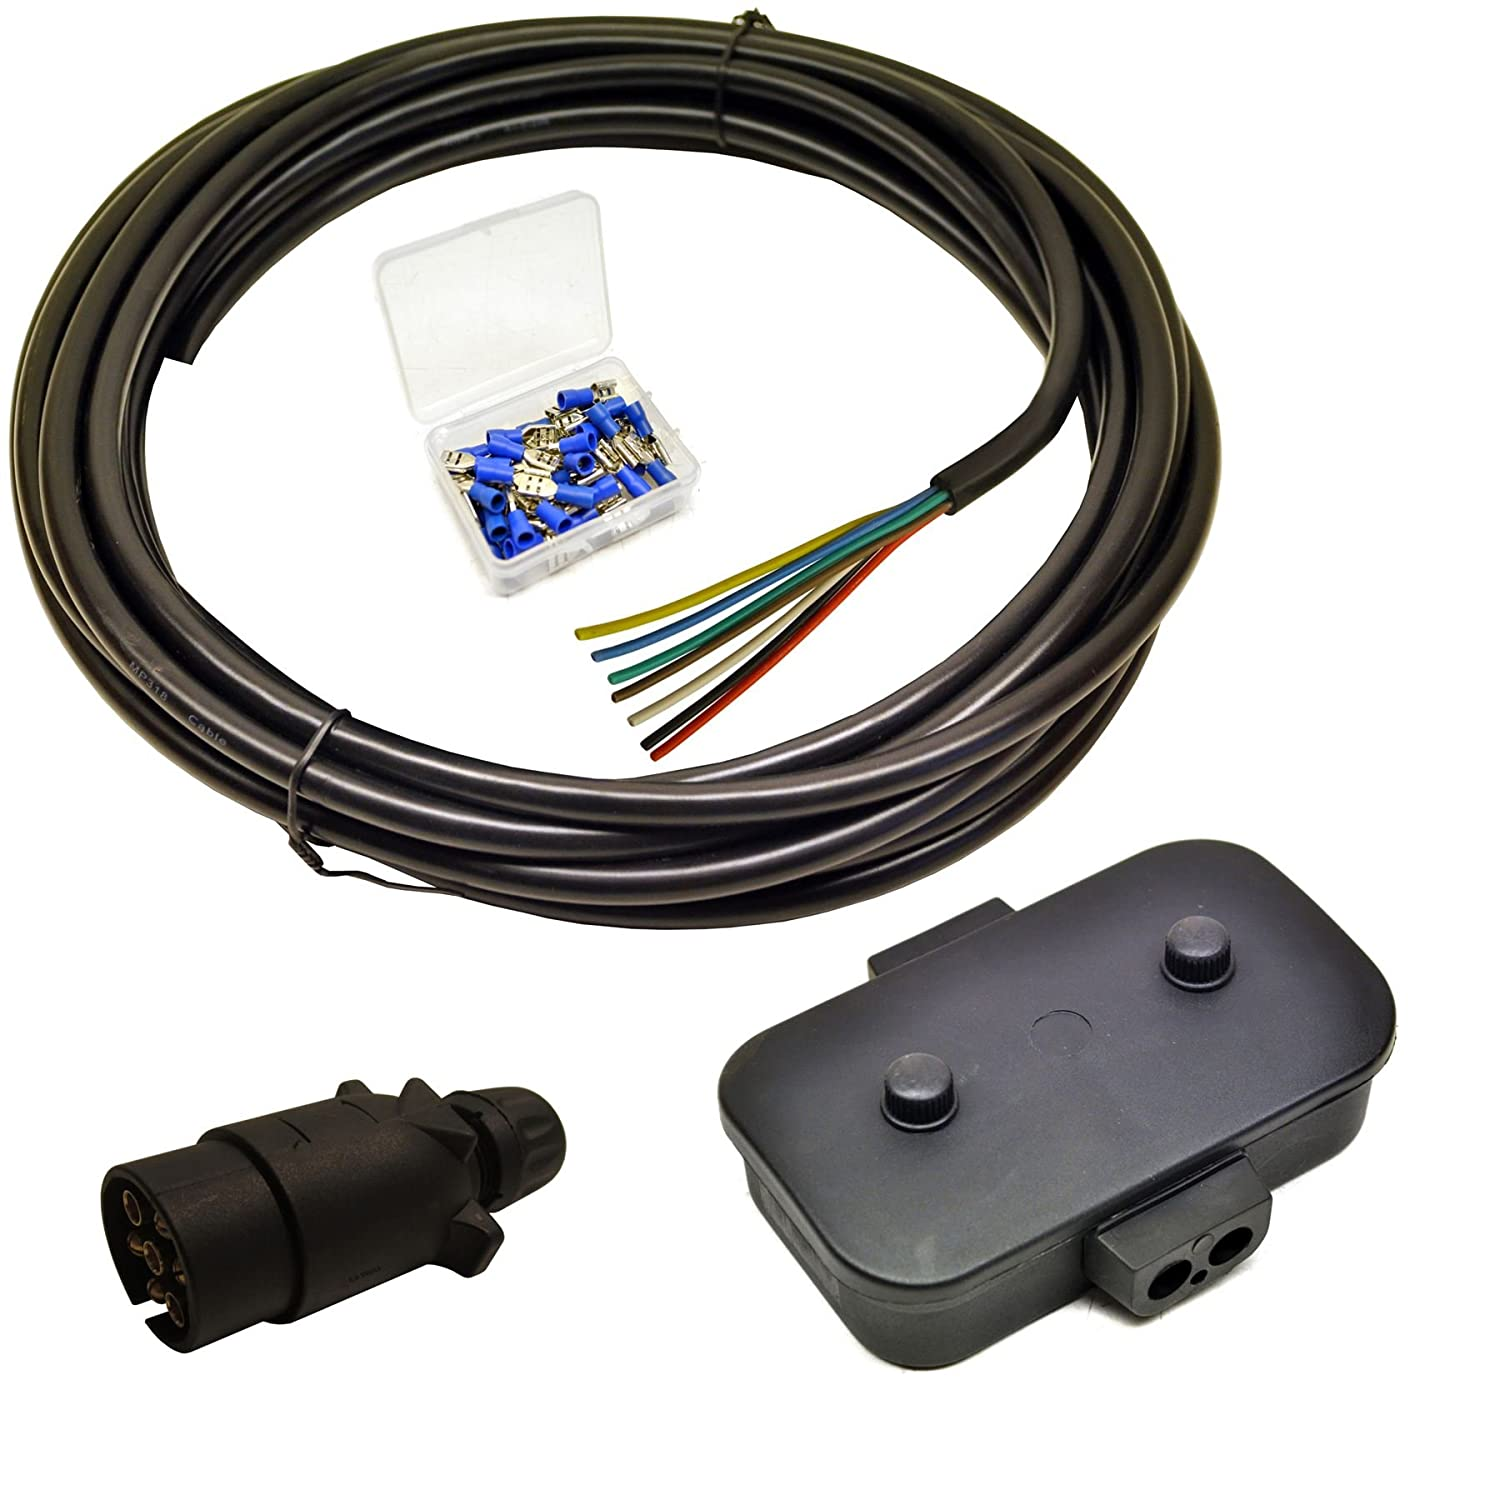 Amazon.com: Trailer Light Electrics Rewire Kit Plug, Junction Box, 5m Cable  / Wire Terminals: Automotive